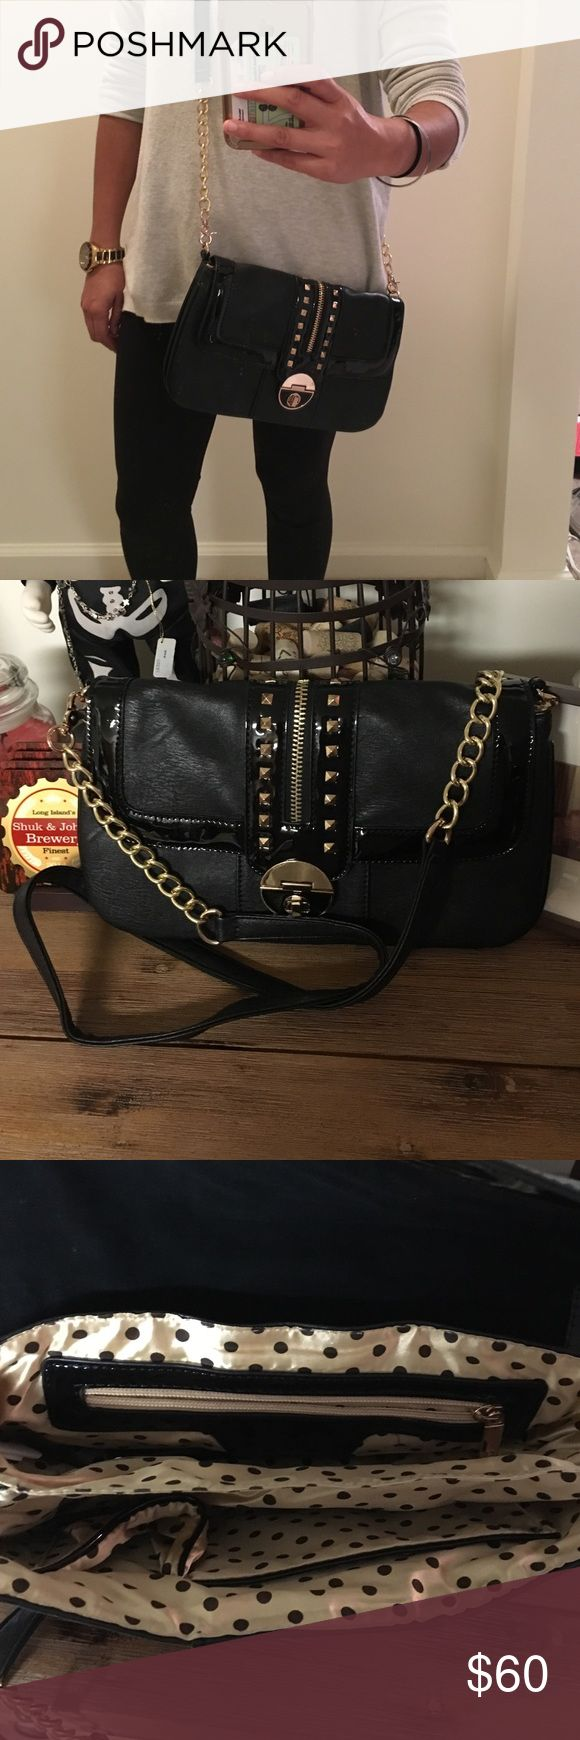 """Melie Bianco Cross Body bag Stutted bag with 2 zippered pockets. 2 separate interior compartments. 2 side pockets. I have this bag in brown - keeping that as it's great for a day or night out. 12 1/2"""" by 7 1/2"""". Adorable polka dot print Melie Bianco Bags Crossbody Bags"""